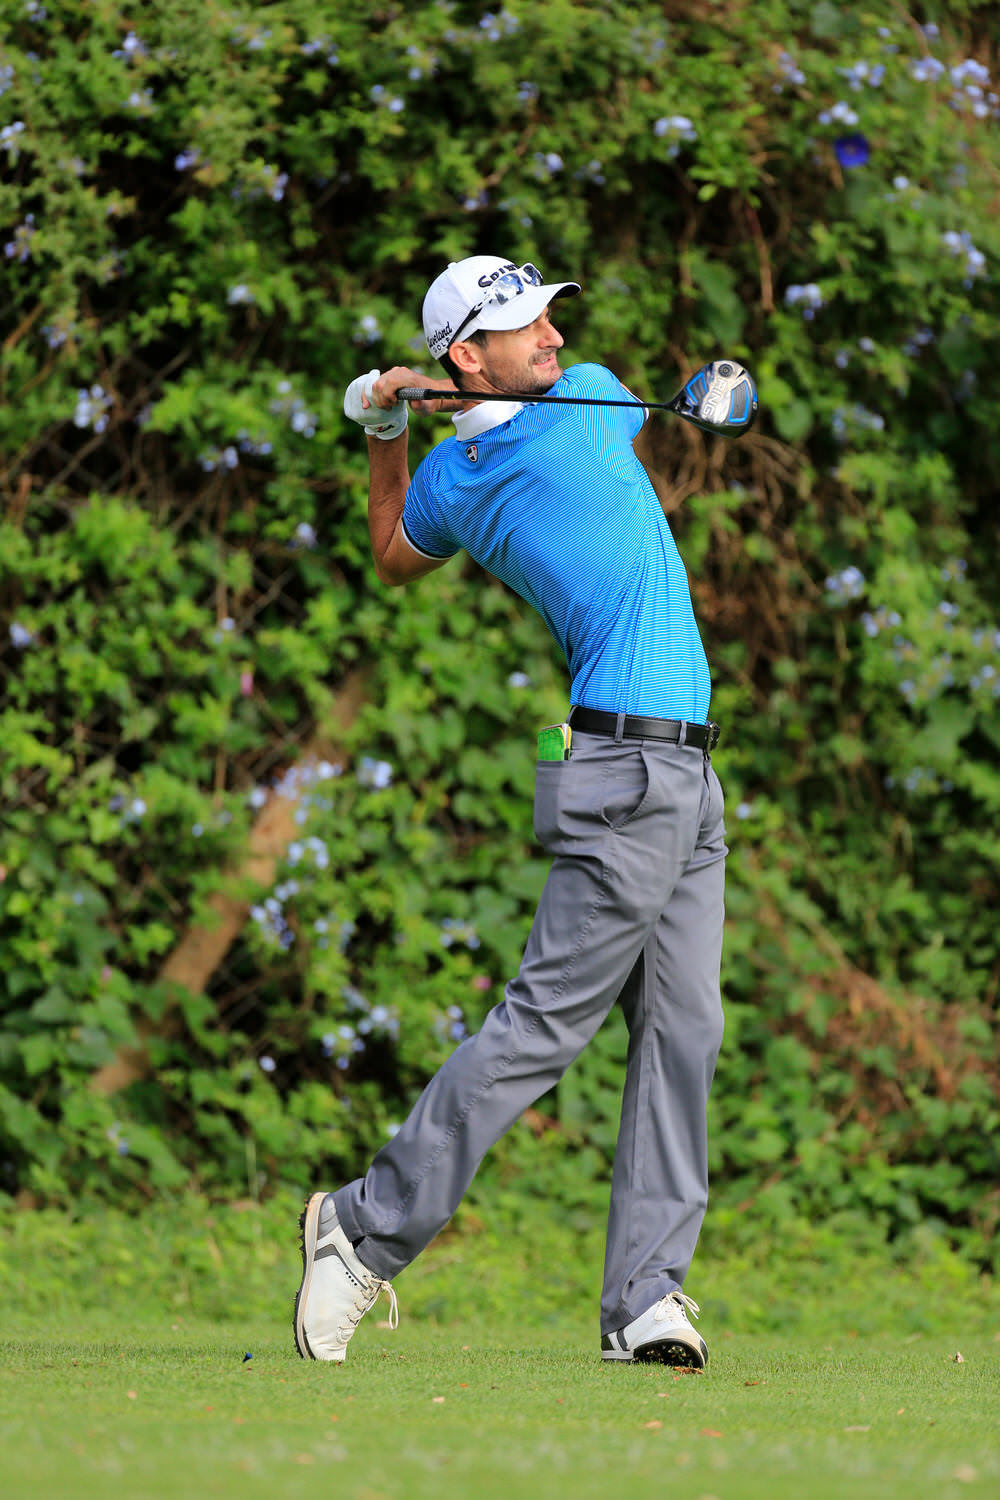 Chris Selfridge (NIR) during the second round of the Barclays Kenya Open played at Muthaiga Golf Club, Nairobi, 24 March 2017.Picture:  Golffile  | Phil Inglis